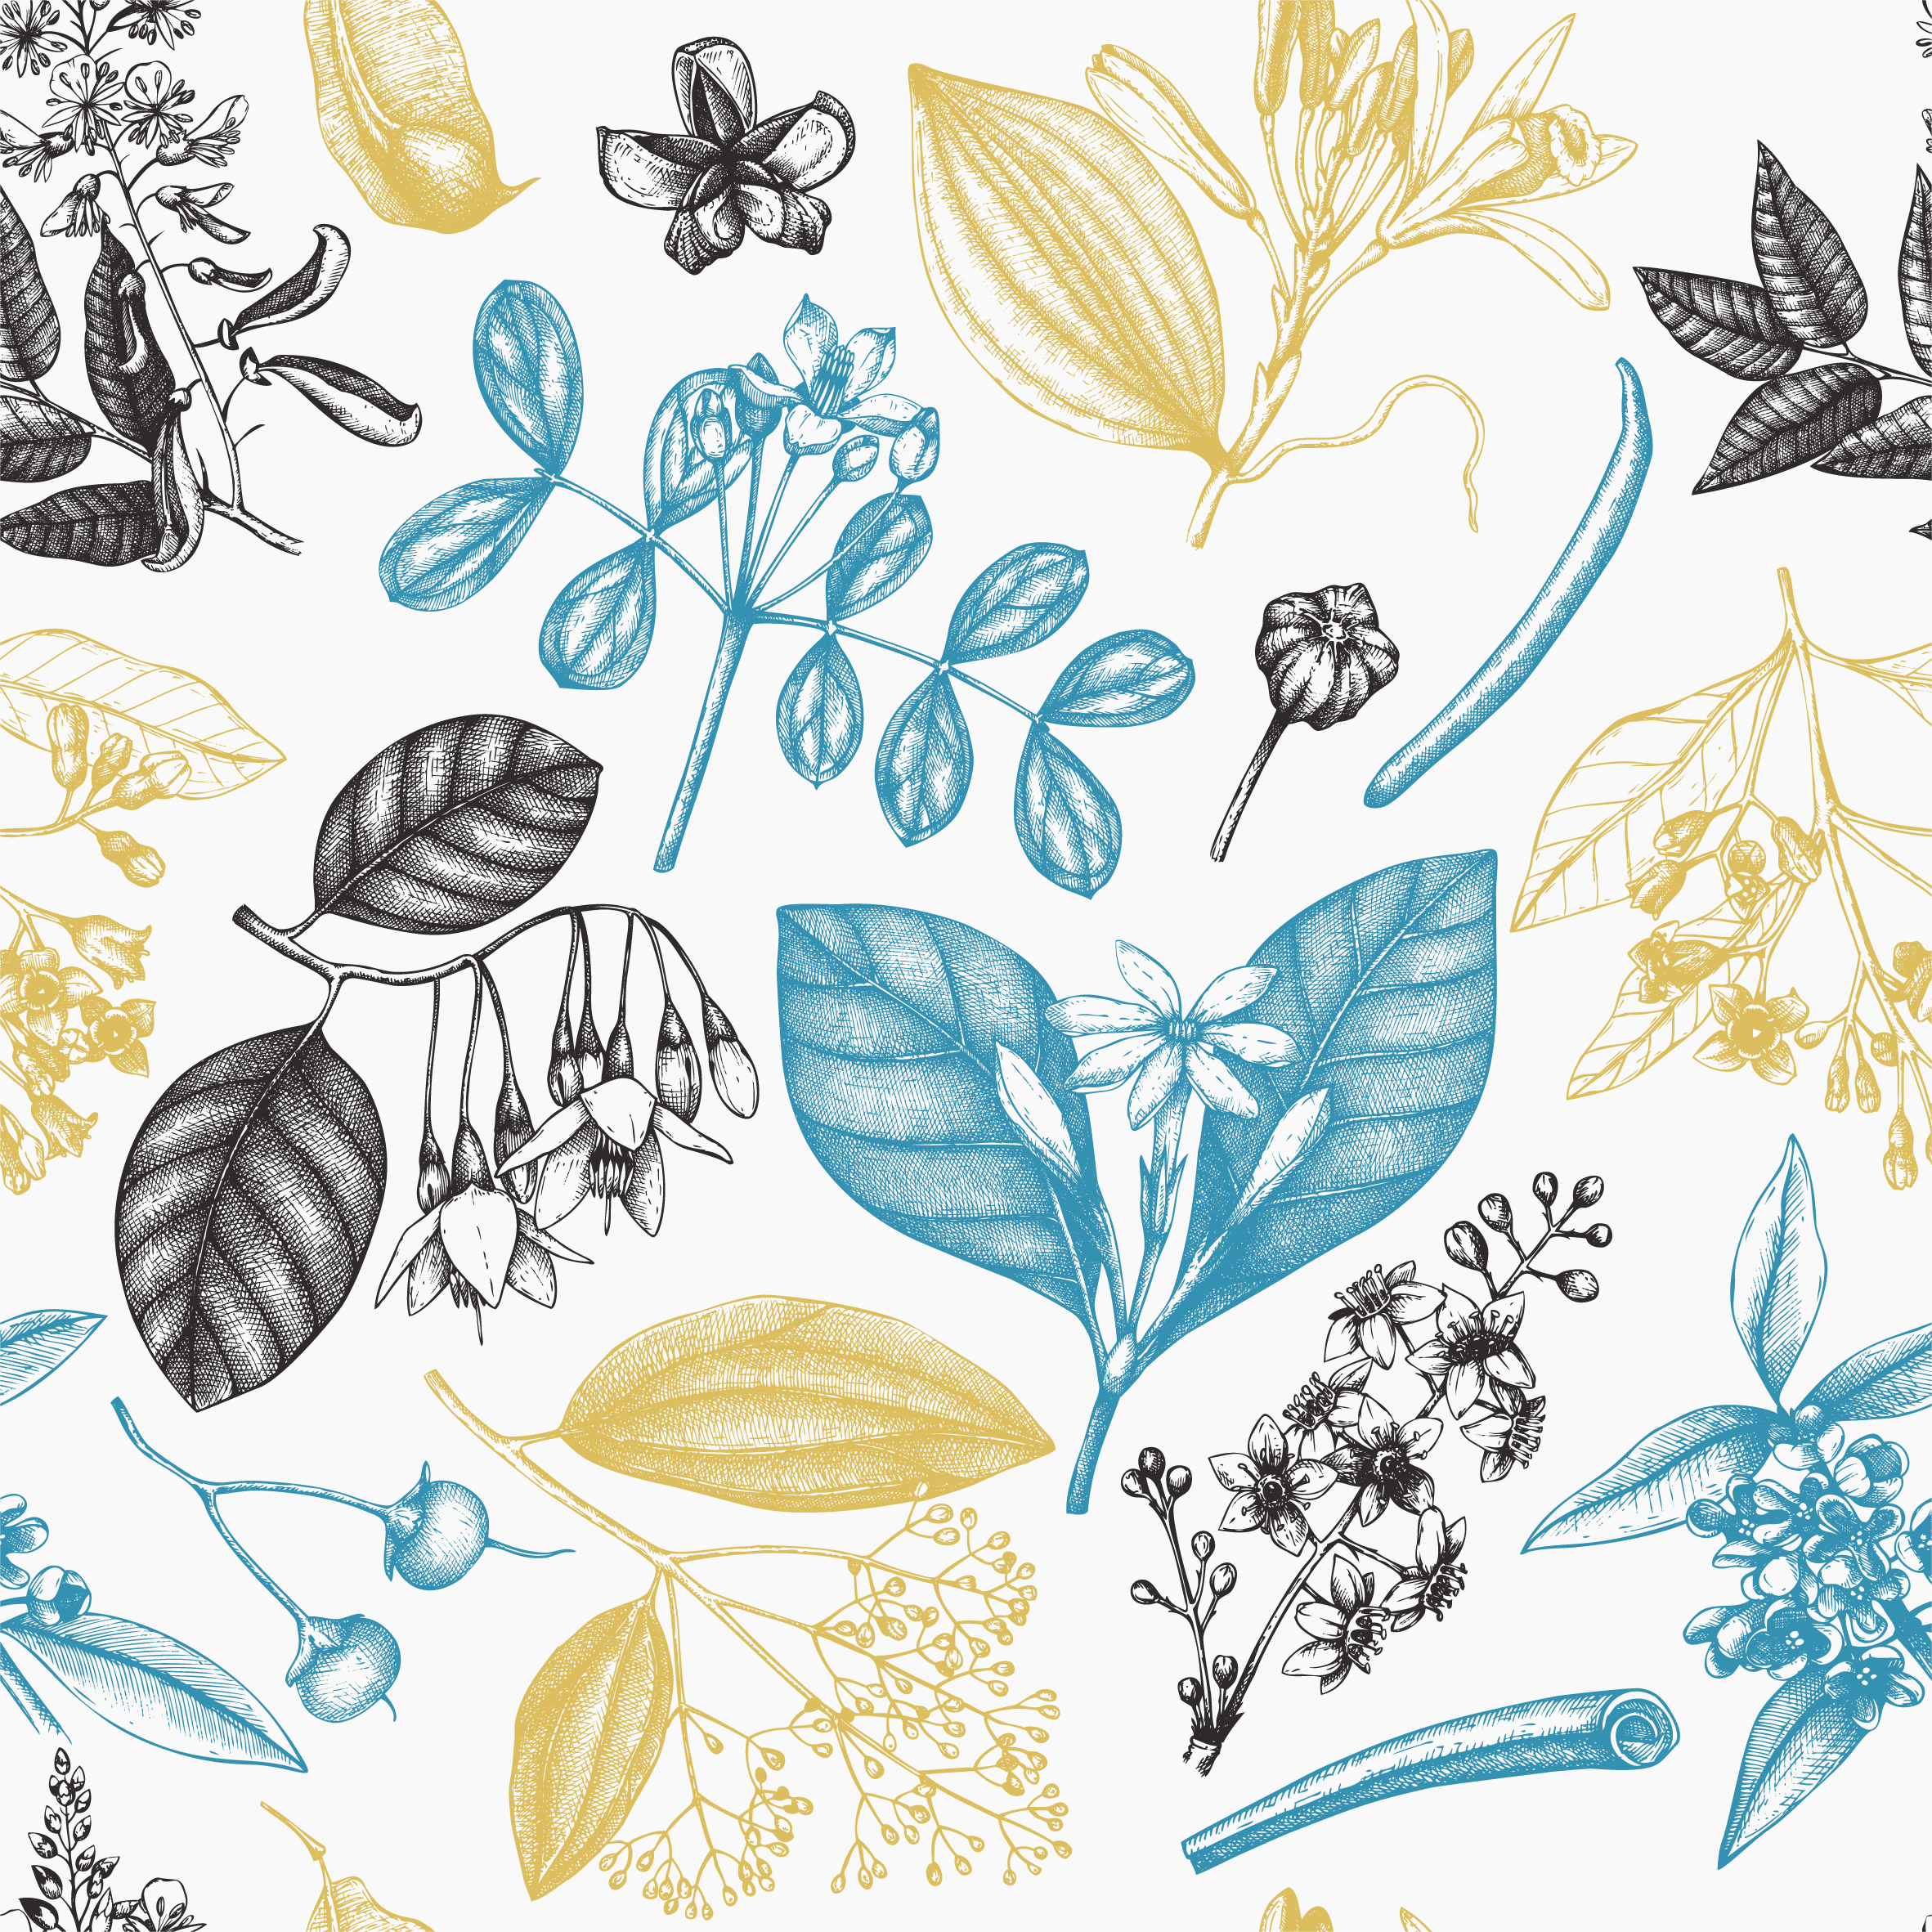 A soft pencil sketch of different wild plants in muted yellow, blue, and black on a white background.